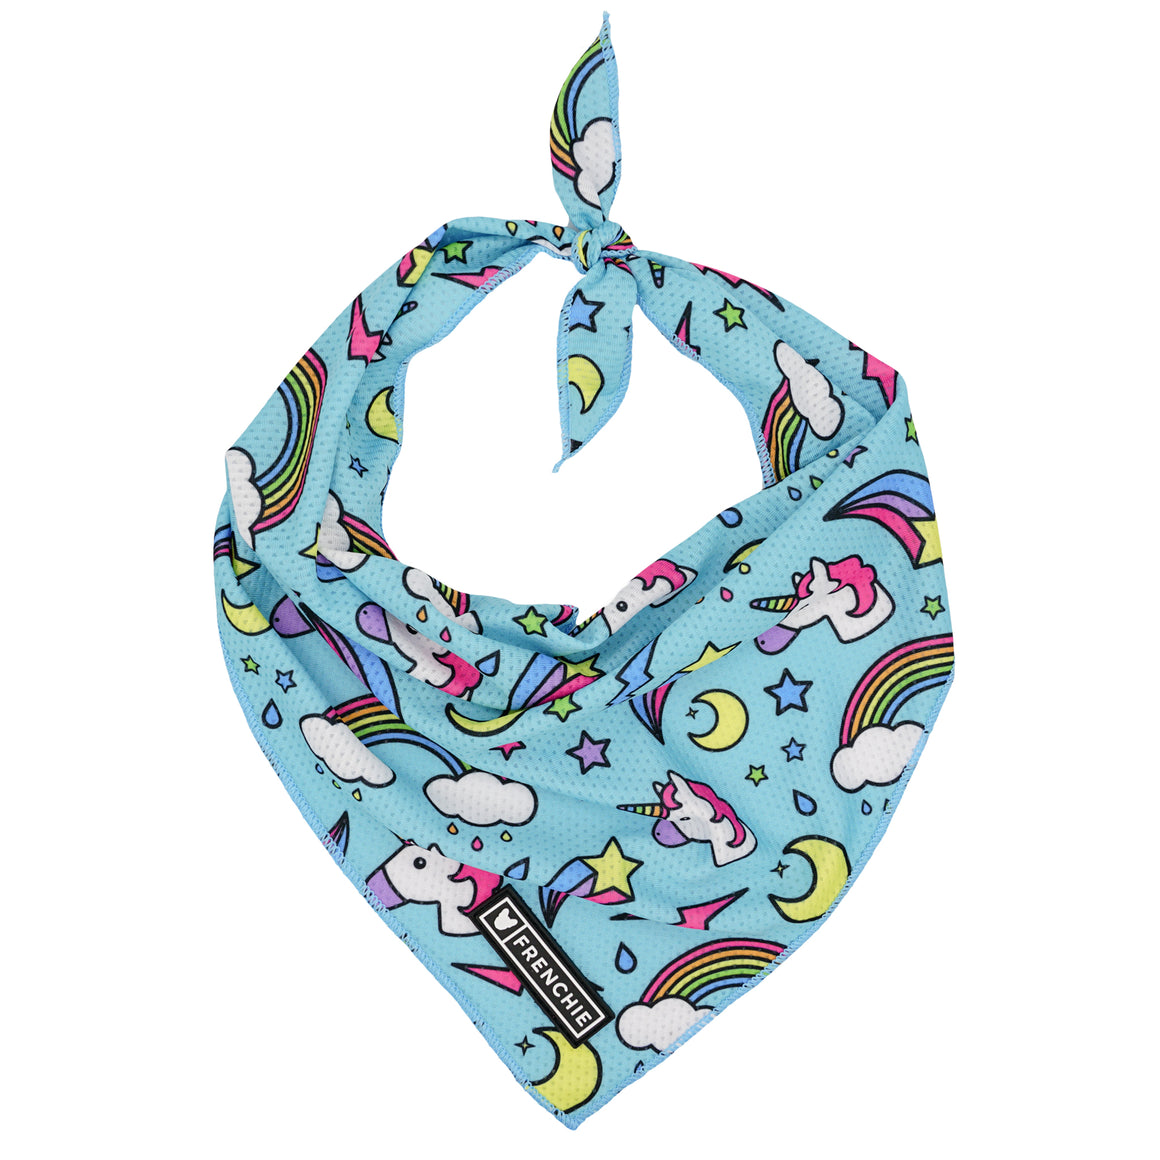 Frenchie Cooling Bandana - Blue Magical Unicorn